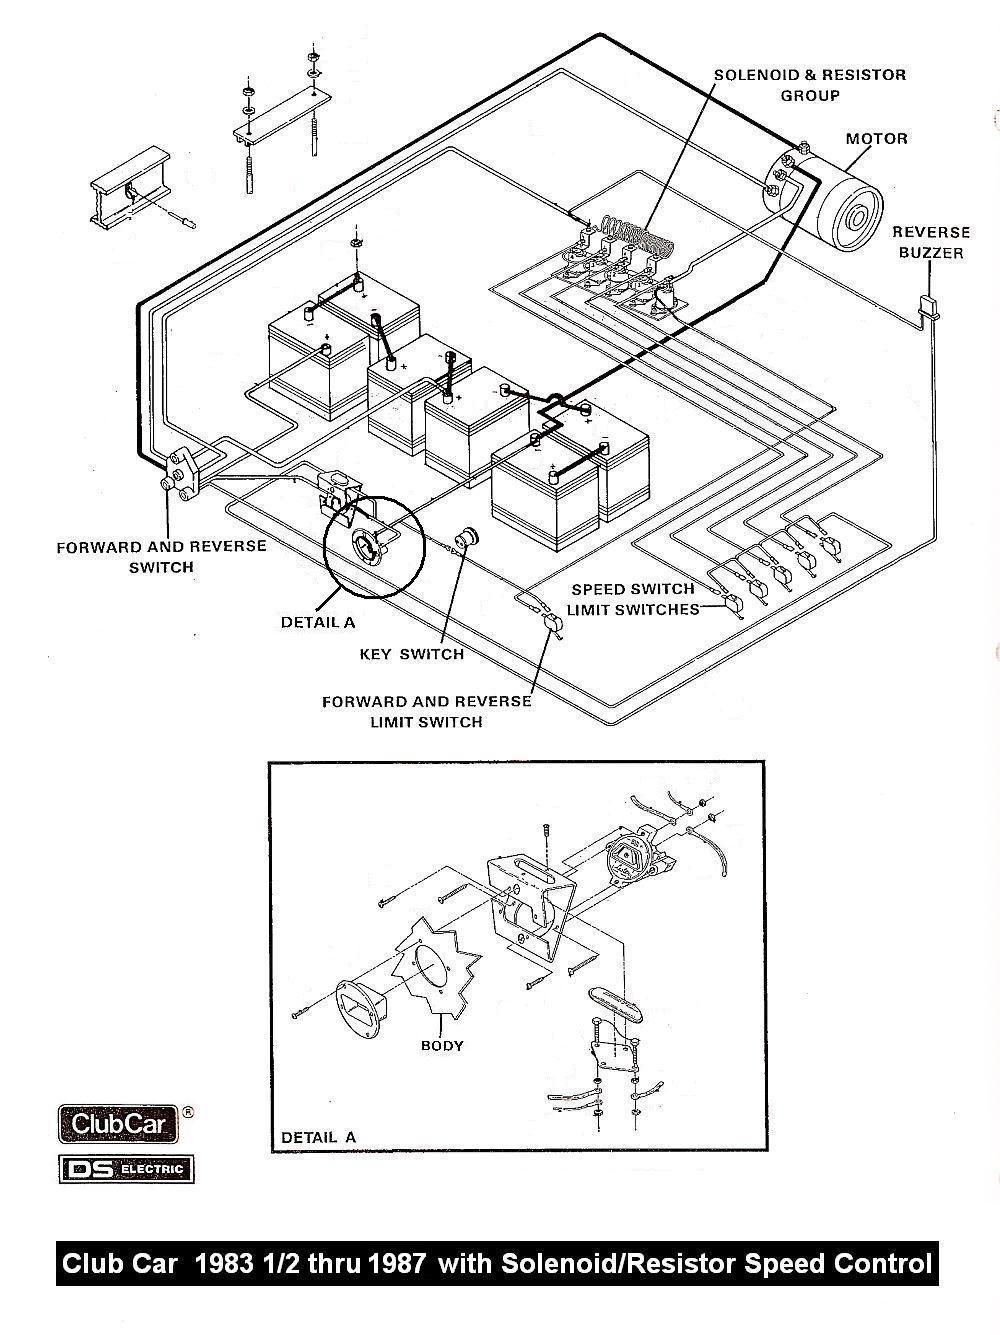 1985 Club Car Wiring Diagram : 28 Wiring Diagram Images